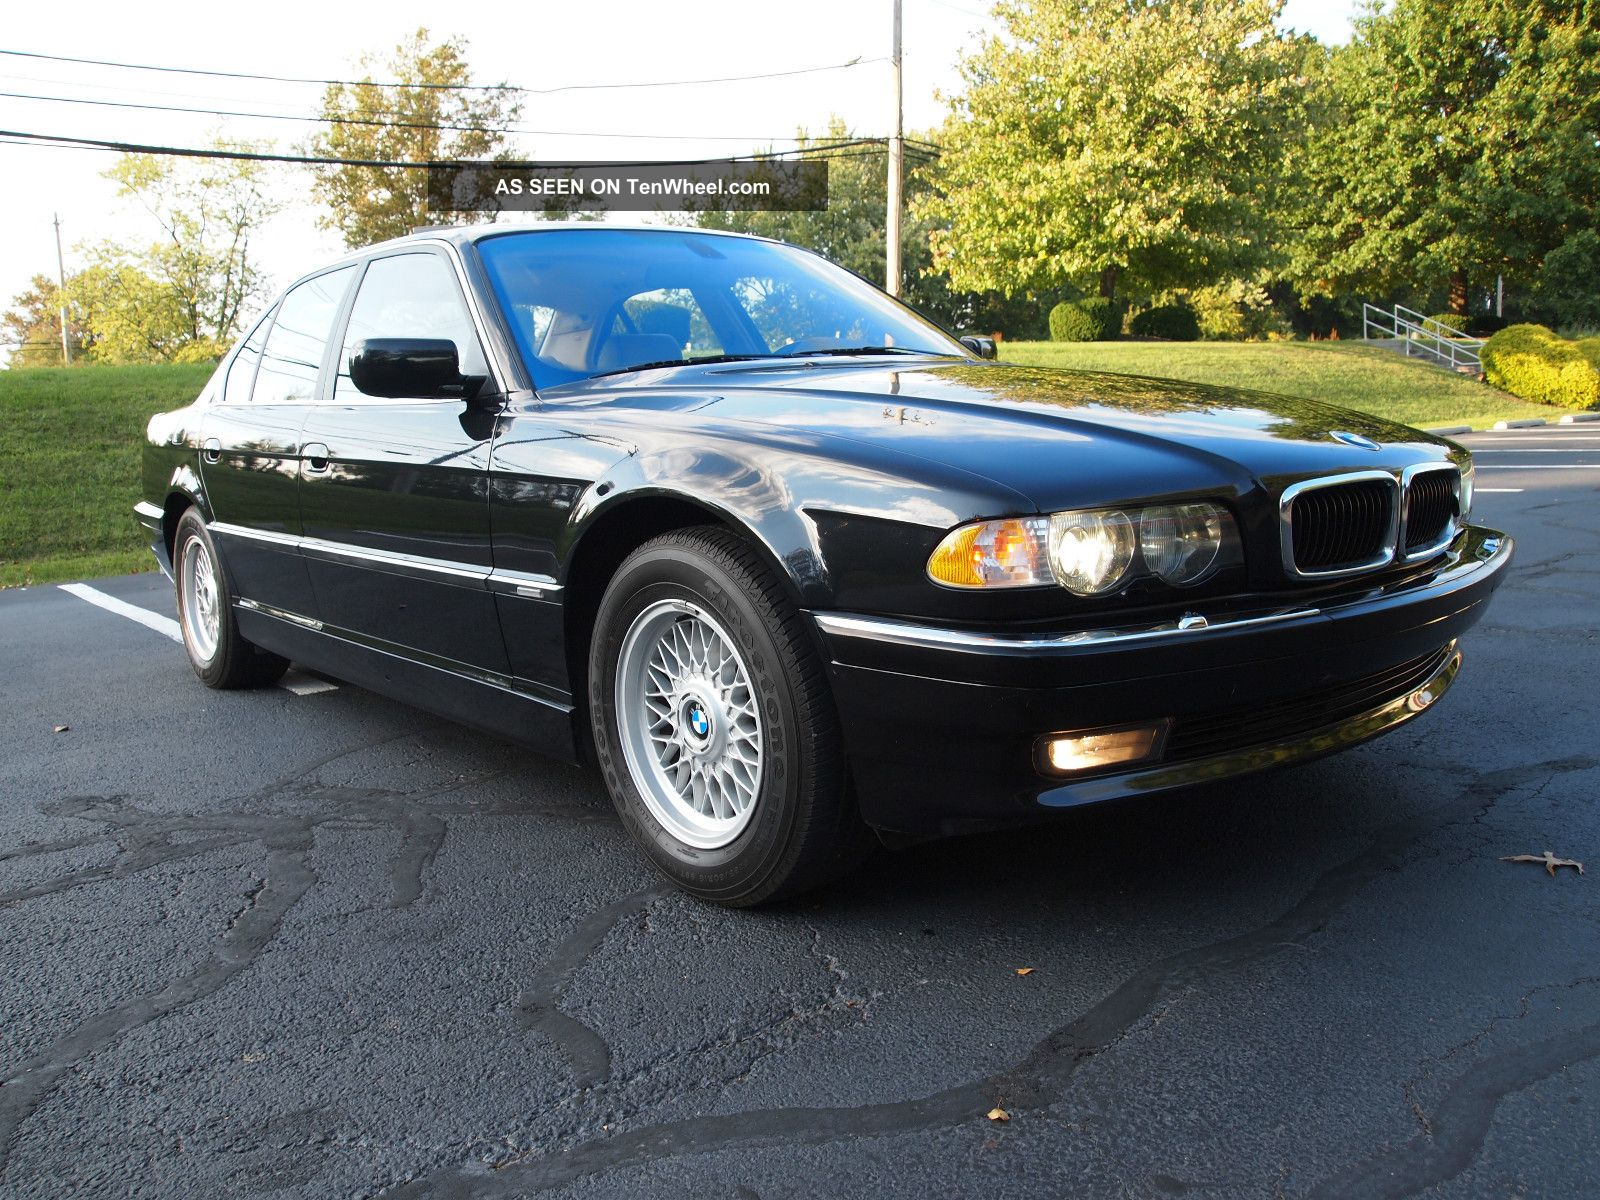 2001 Bmw 740 I With In 7-Series photo